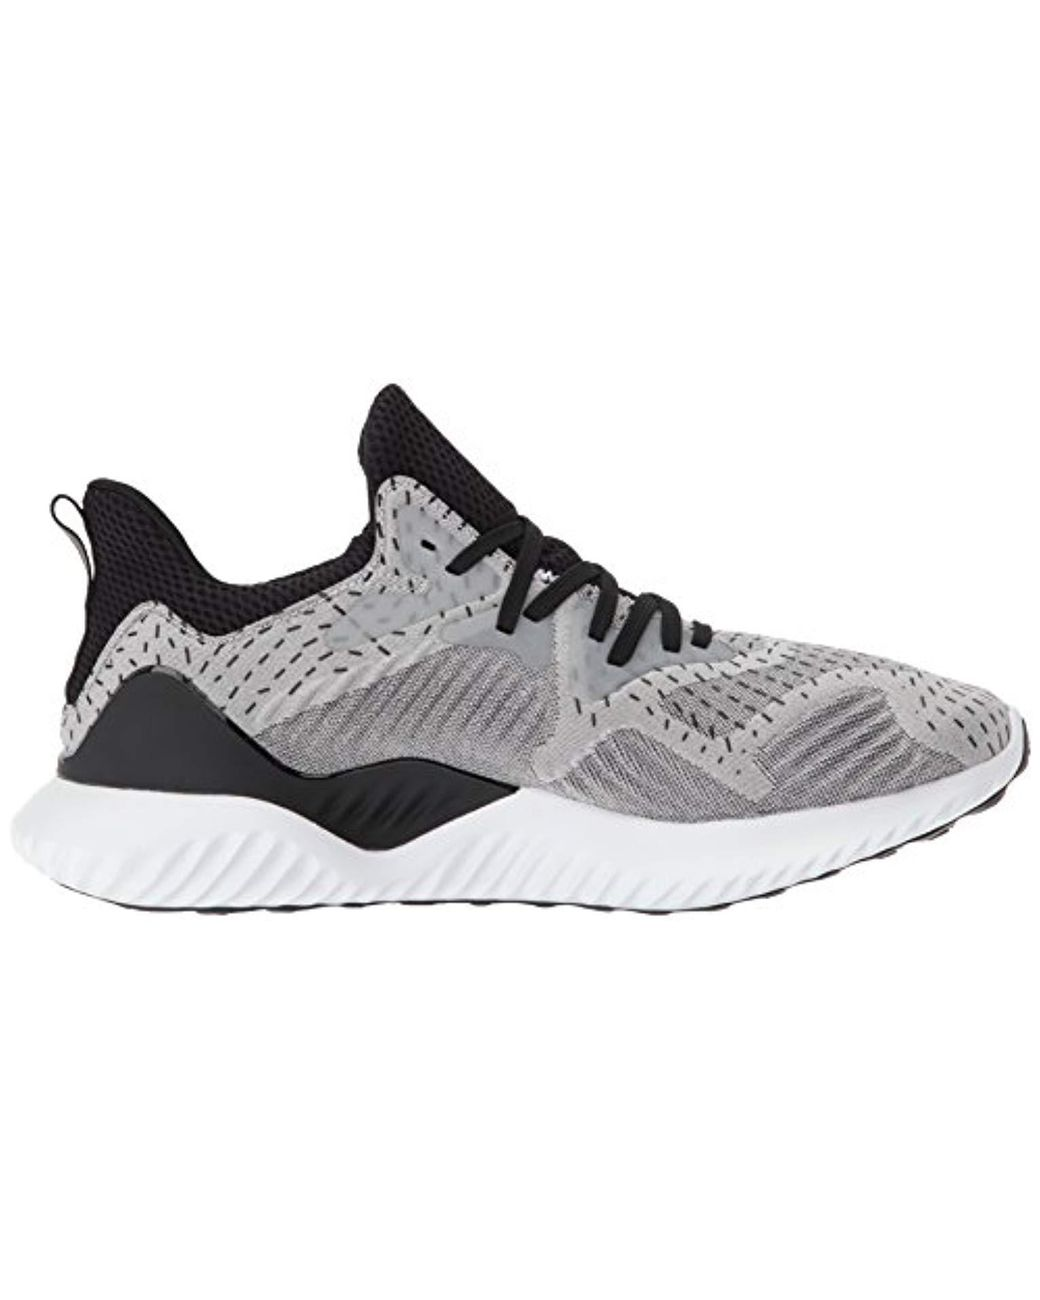 6d0cfa385 Lyst - adidas Alphabounce Beyond M Running Shoe in White for Men